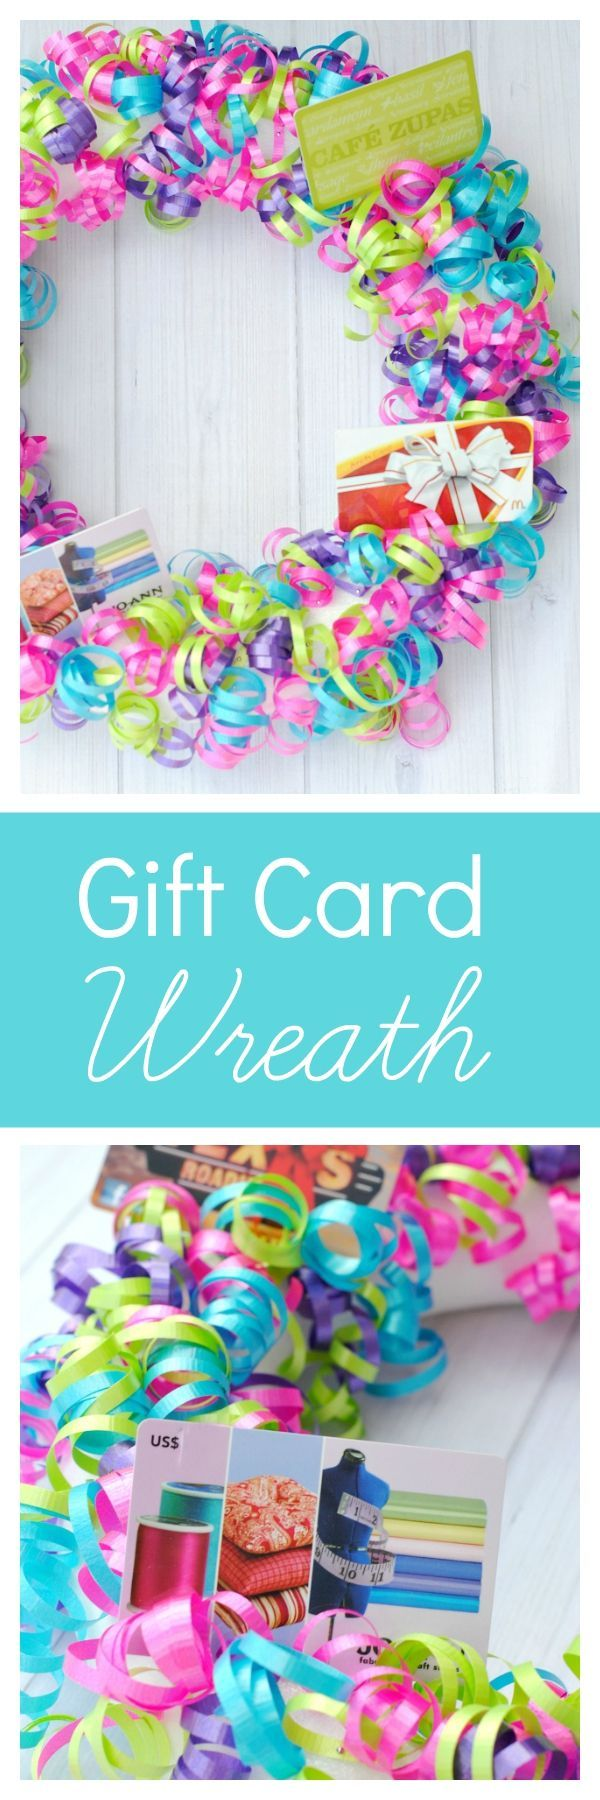 Gift card wreath fun gift idea wreaths gift and basket ideas cute gift idea make a festive wreath and fill it with gift cards 1betcityfo Image collections